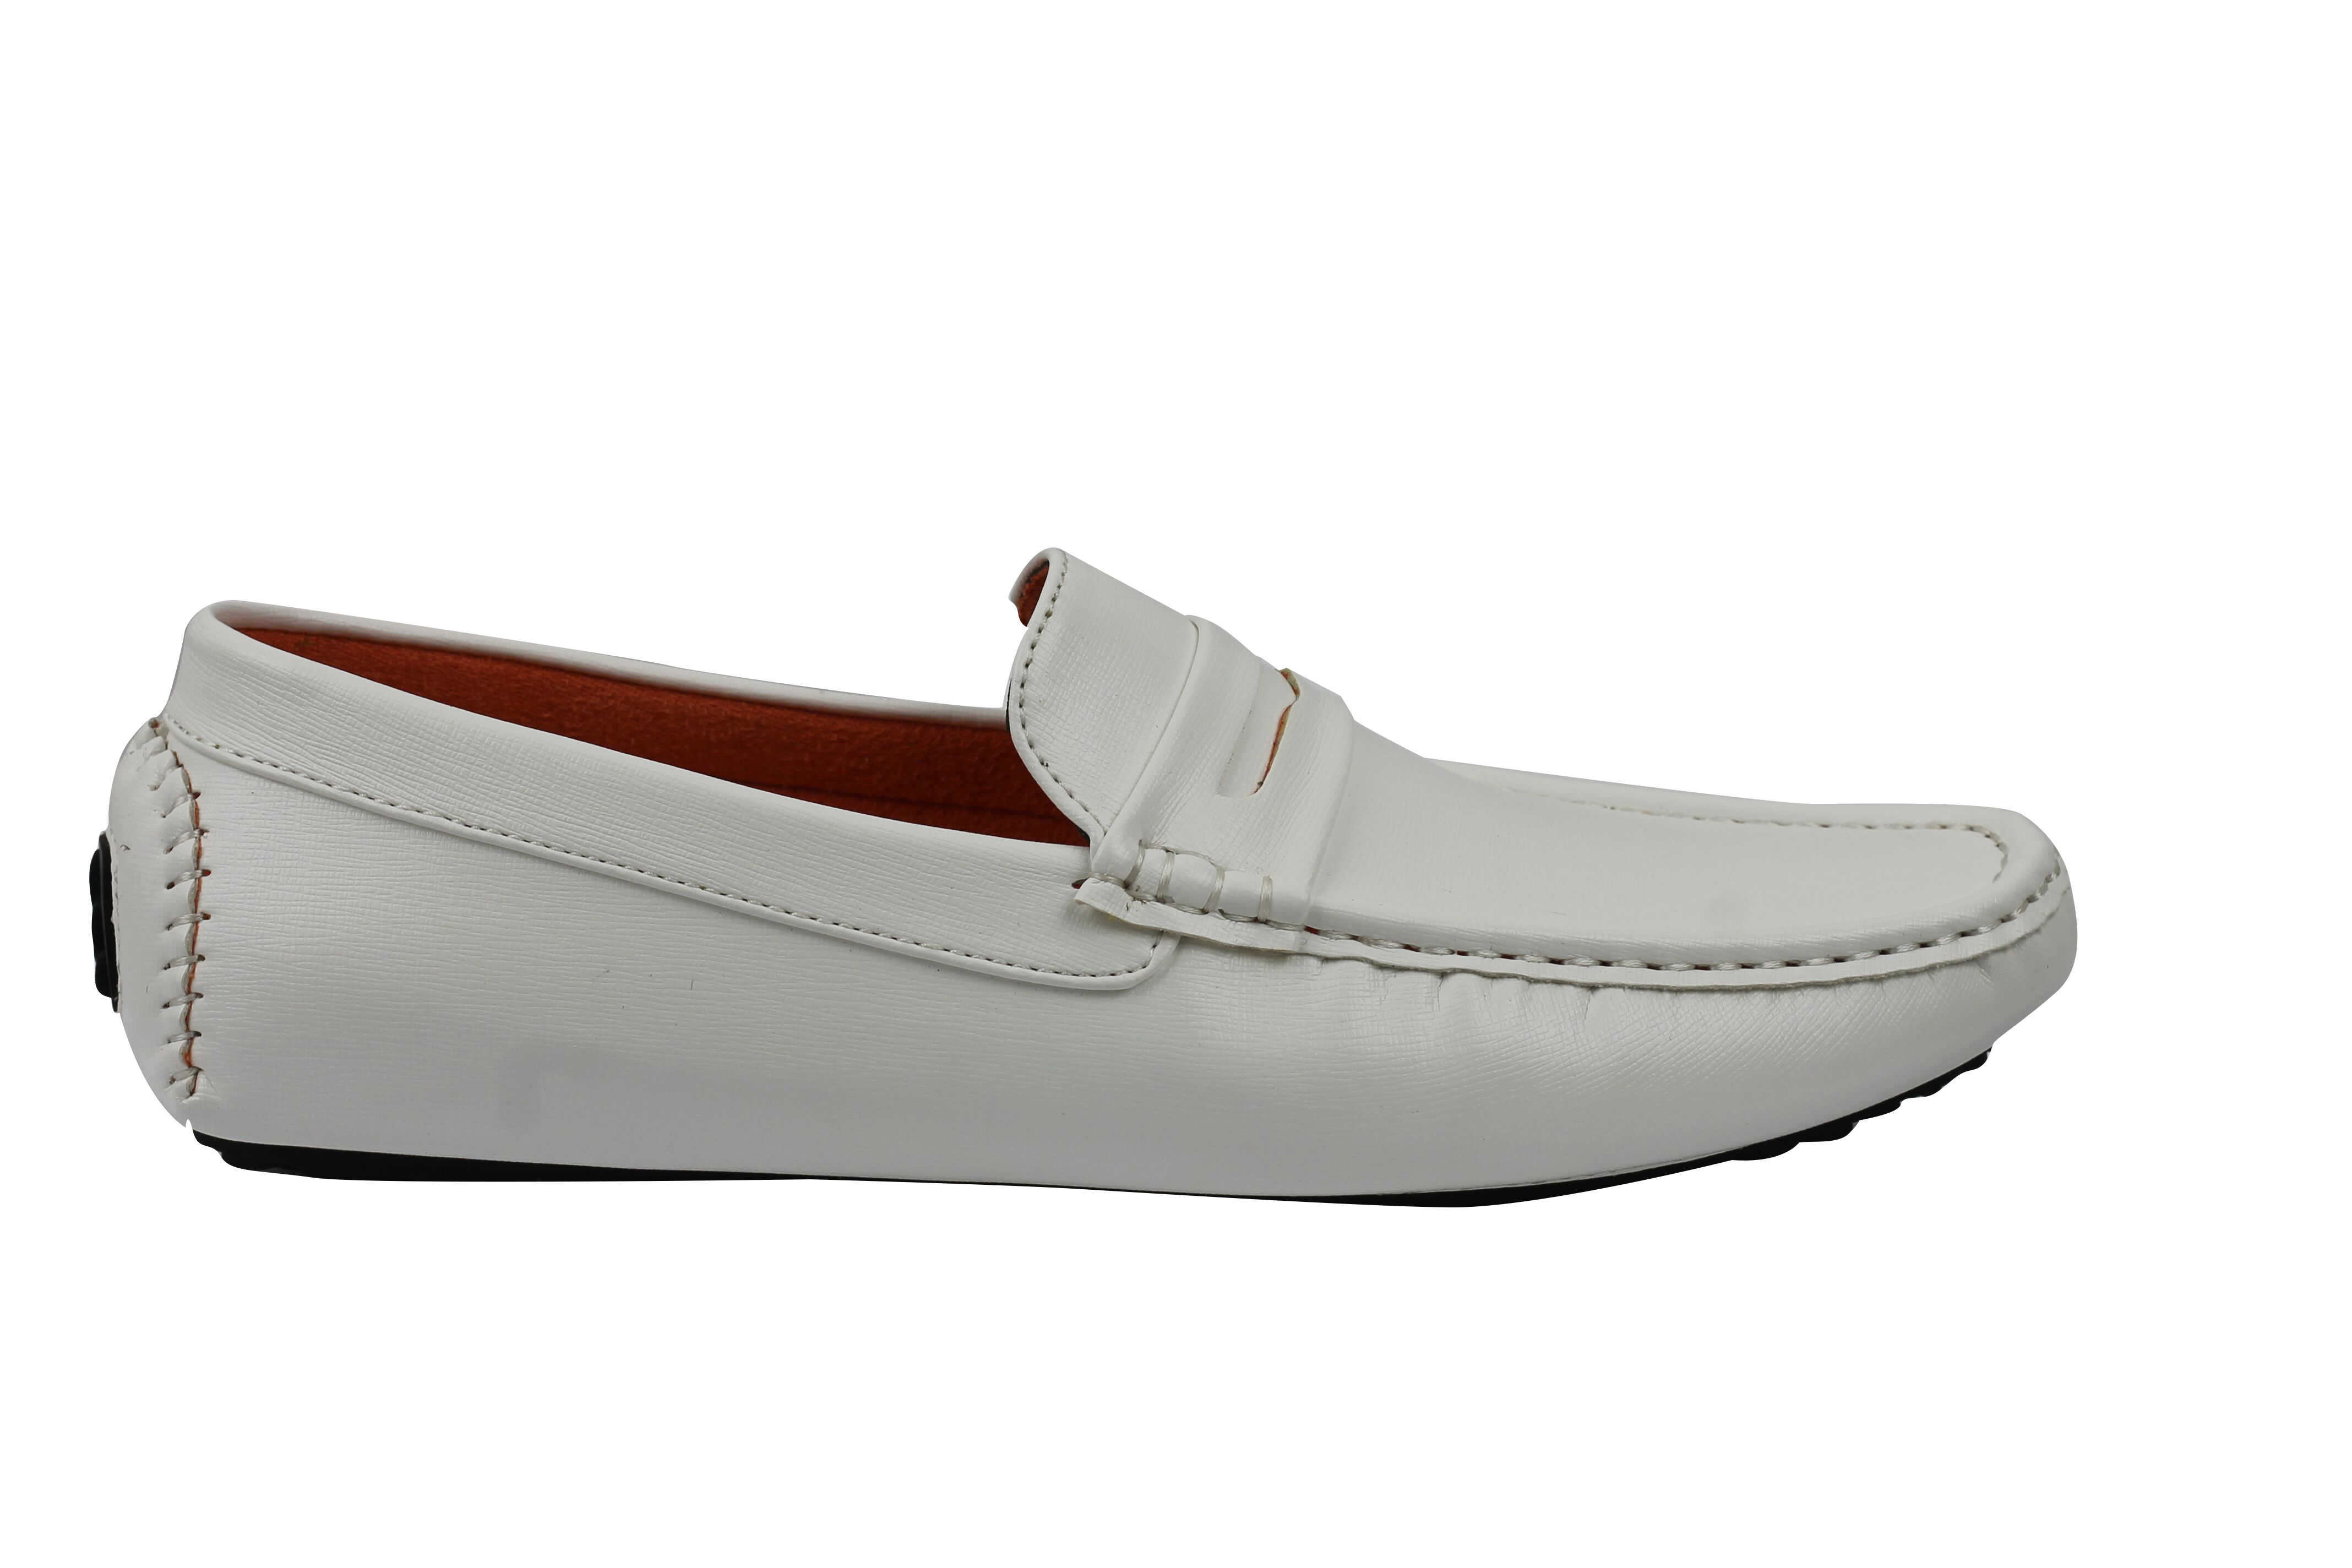 New-Mens-Faux-Leather-Slip-on-Penny-Loafers-Driving-Shoes-UK-Sizes-6-7-8-9-10-11 thumbnail 14